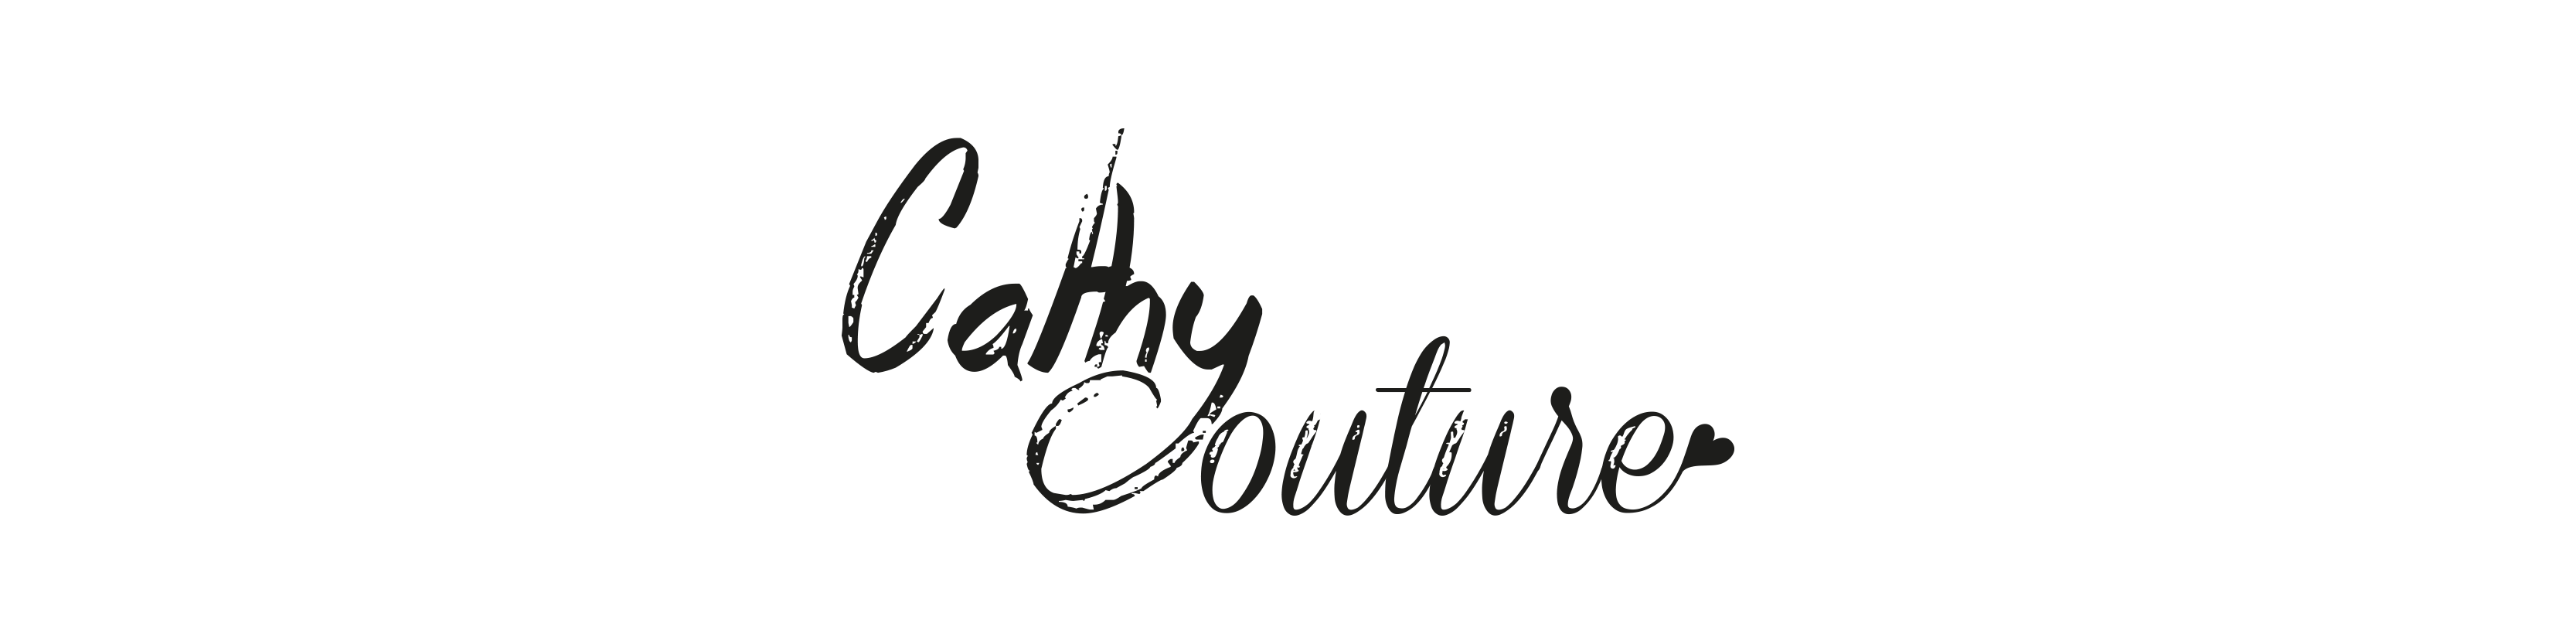 Cathy Couture